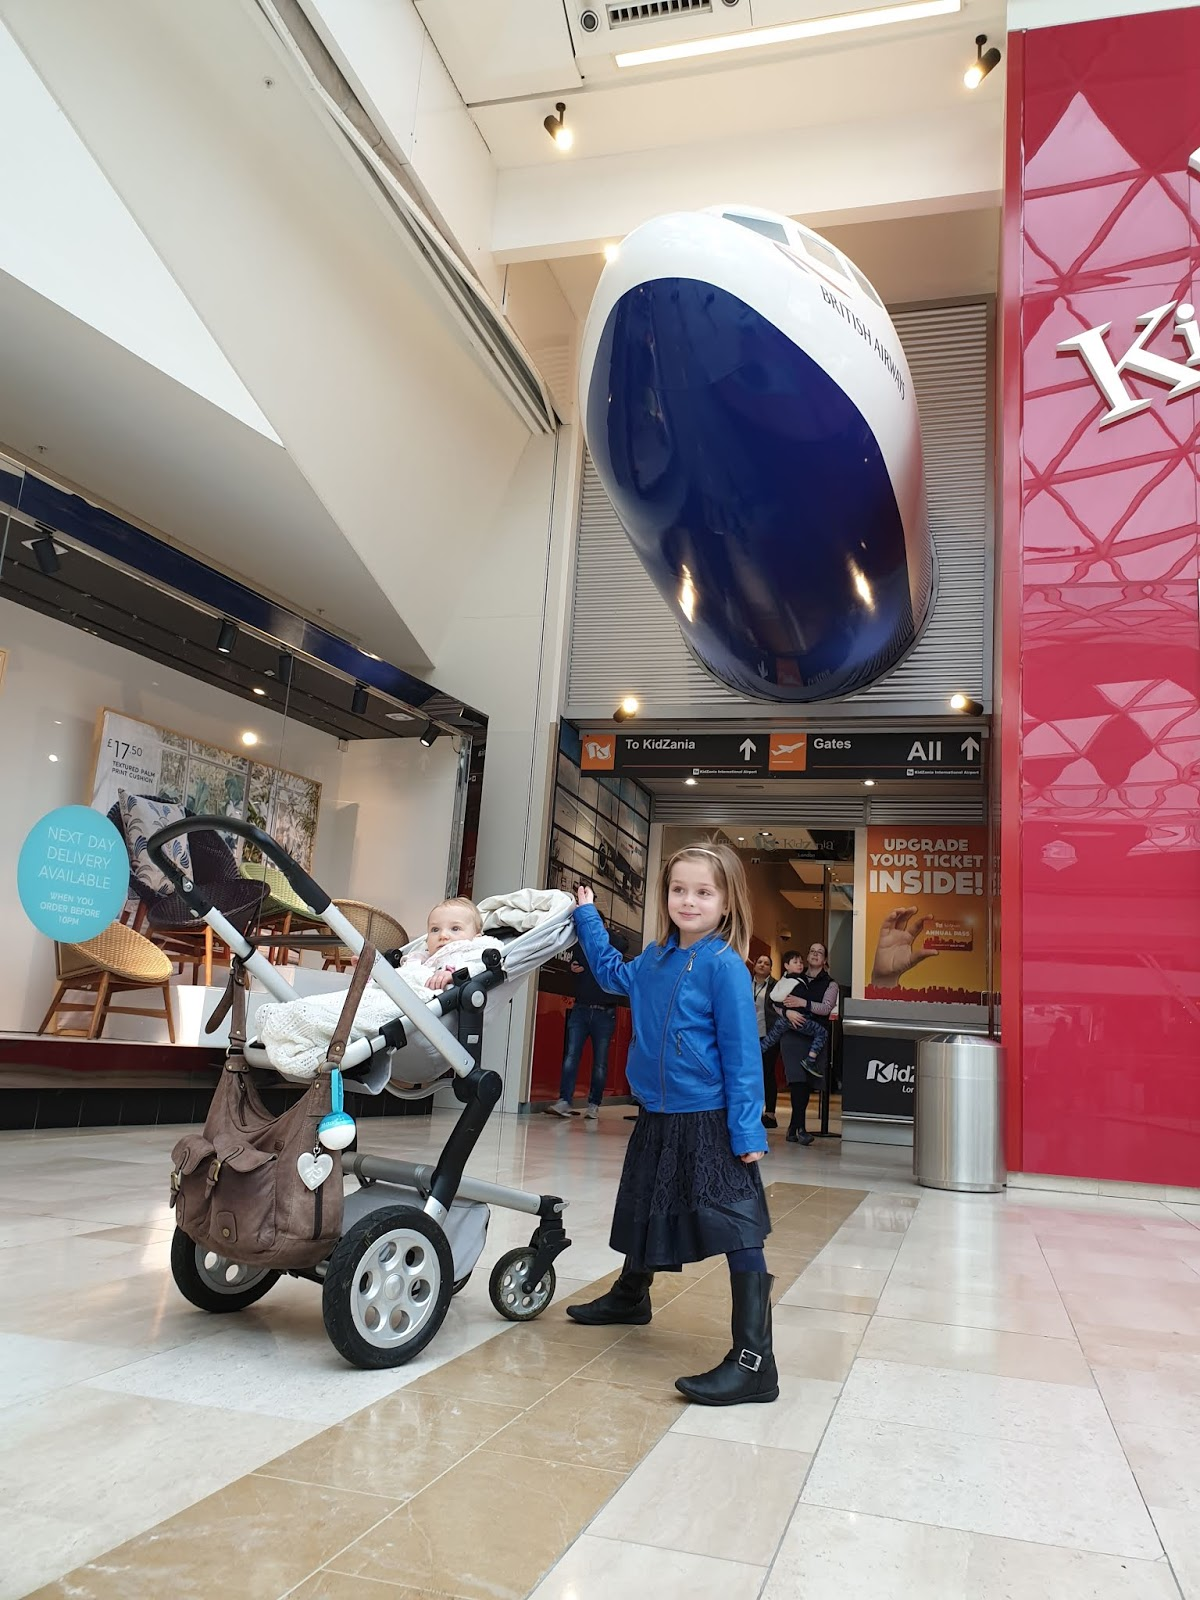 kidzania london tips